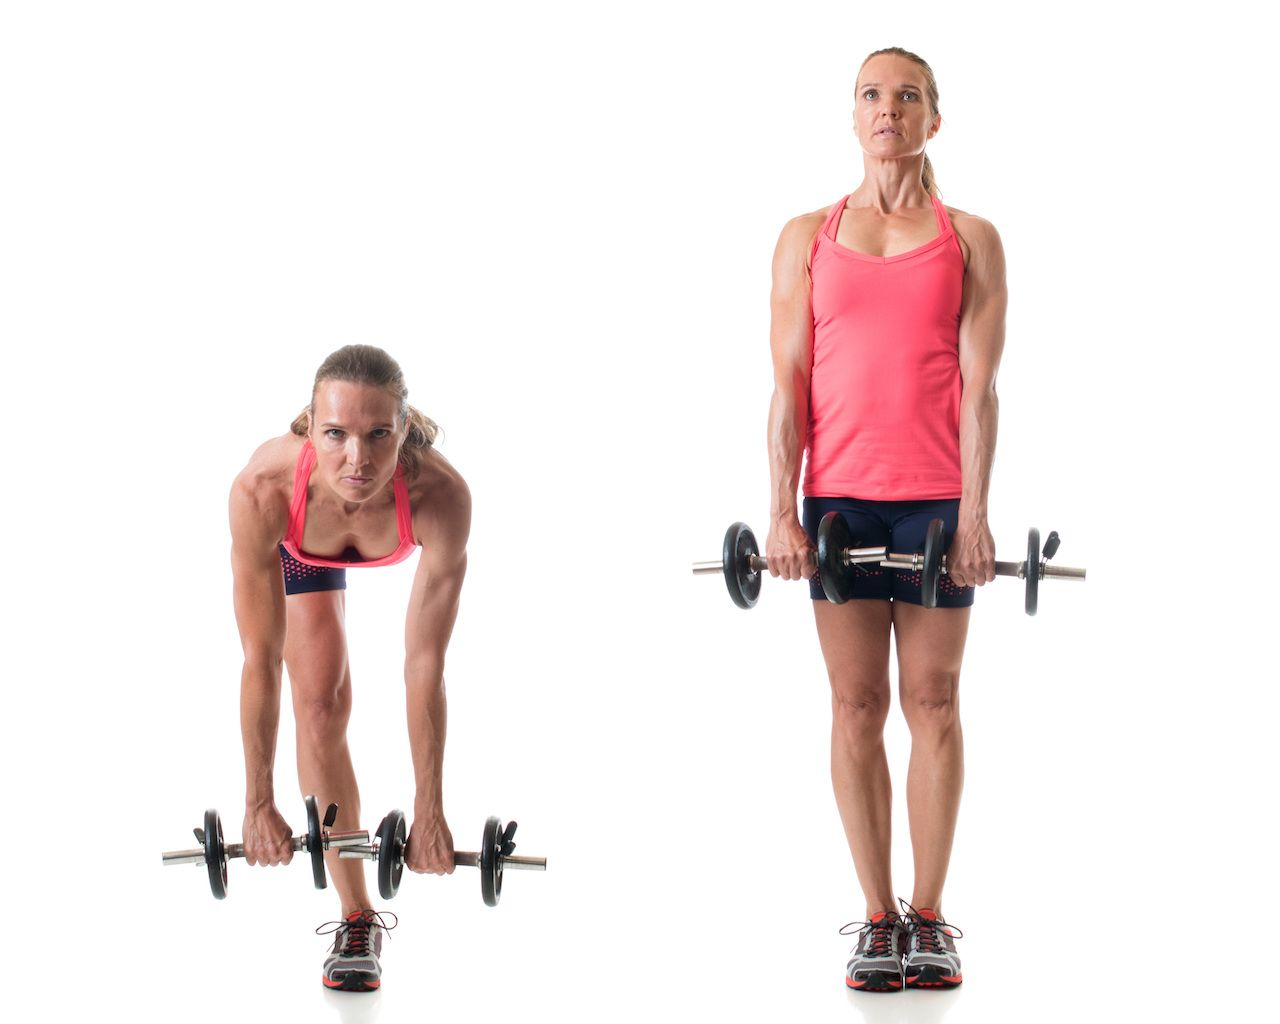 Single-leg deadlift exercise